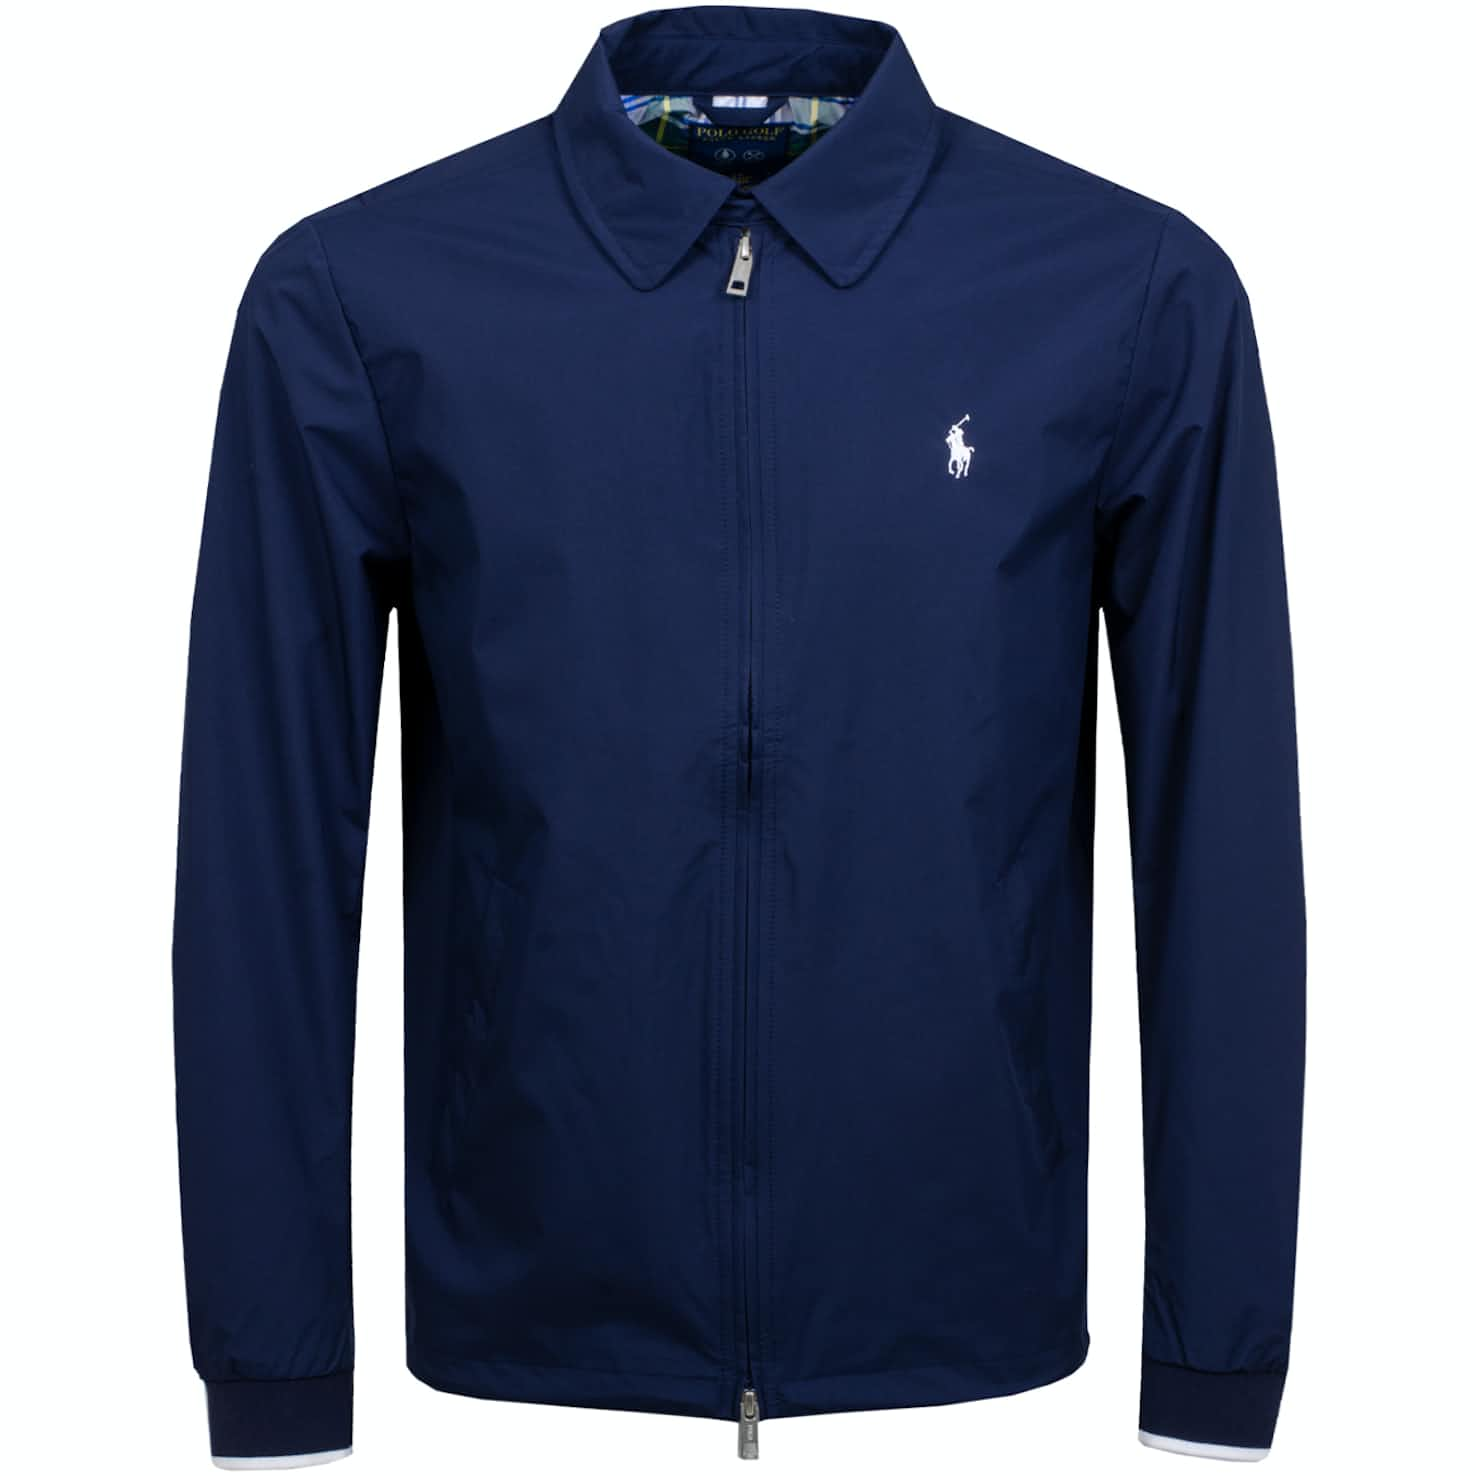 Barracuda Jacket French Navy - AW19